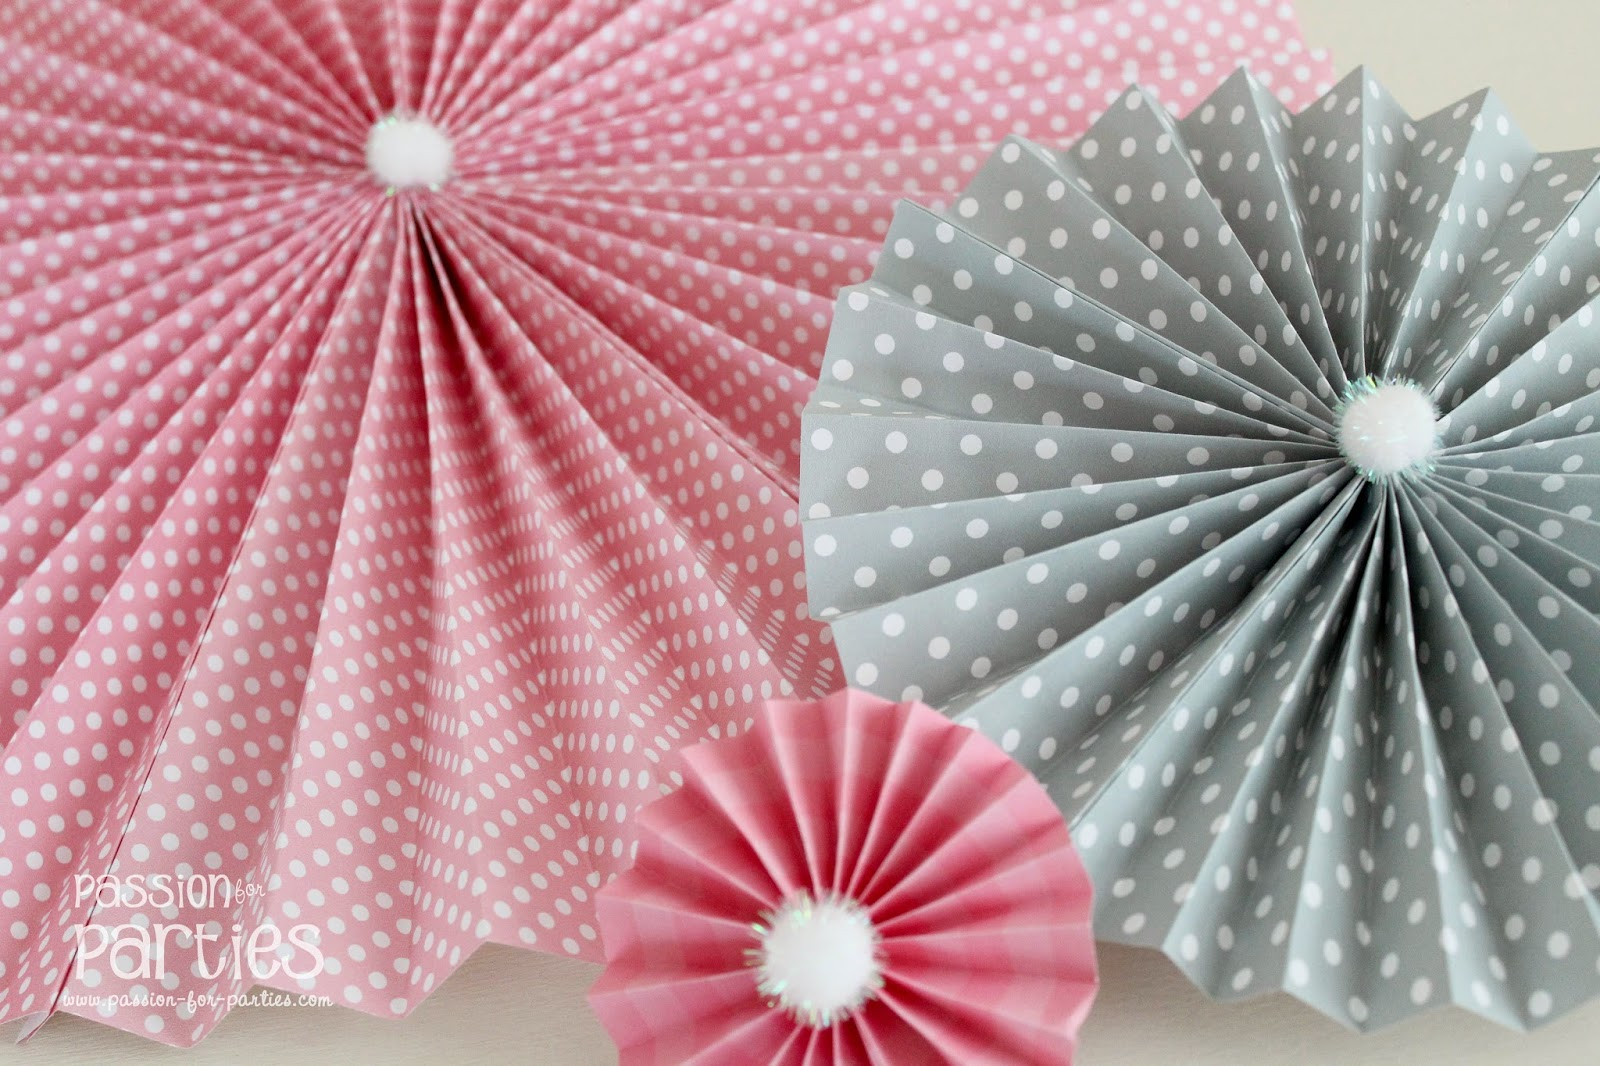 How to make a paper rosette make valentine paper rosettes how to how to make paper rosettes images mightylinksfo